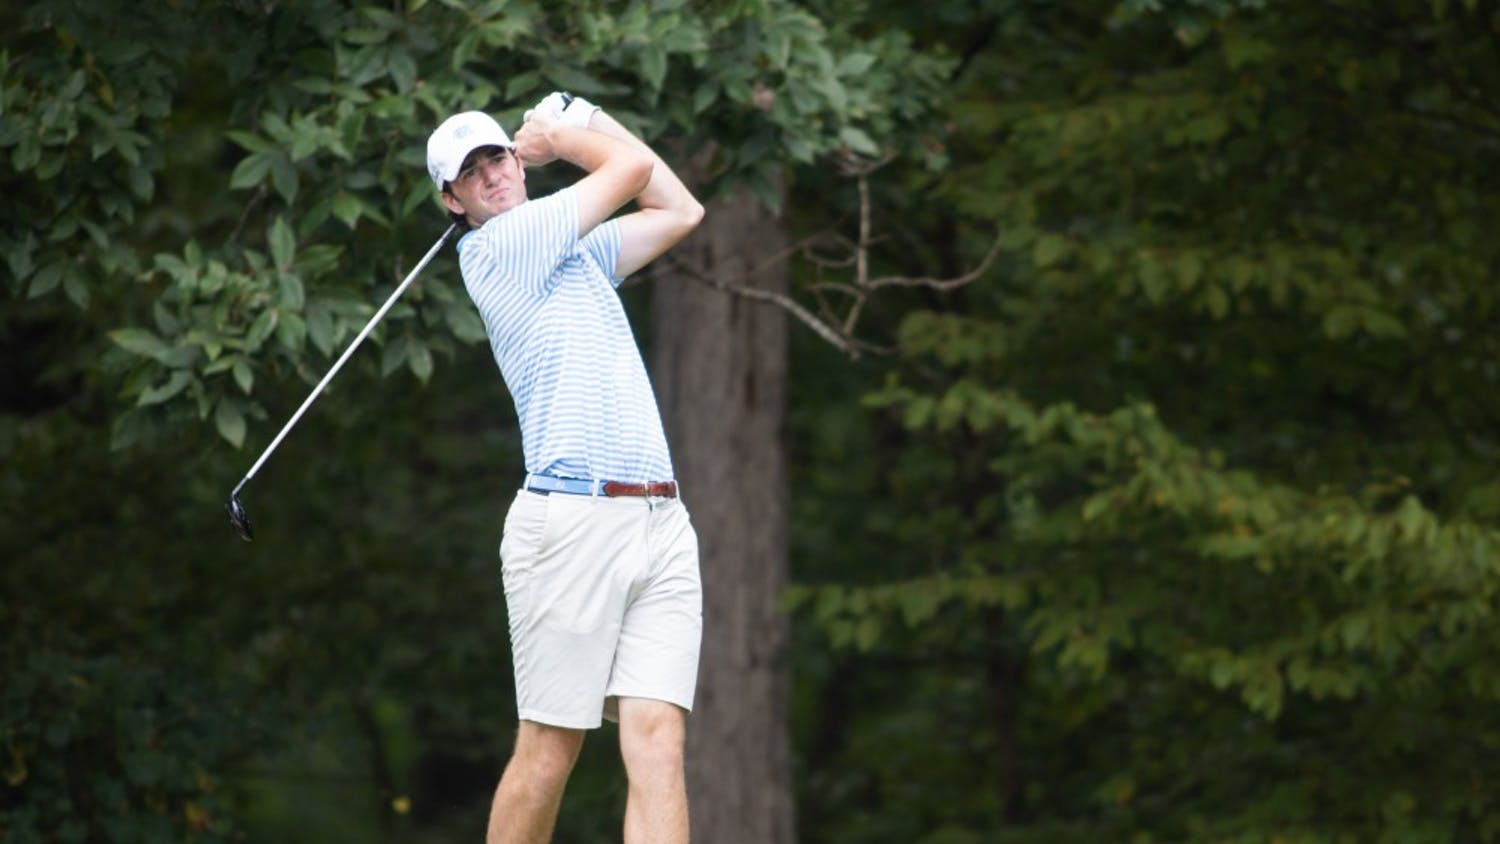 UNC-Chapel Hill sophomore Ryan Burnett tees off at the Rod Myers Invitational at the Duke University Golf Club on Sunday, September 15, 2019. Burnett placed third with an even-par 72, his second third-place finish at the invitational.